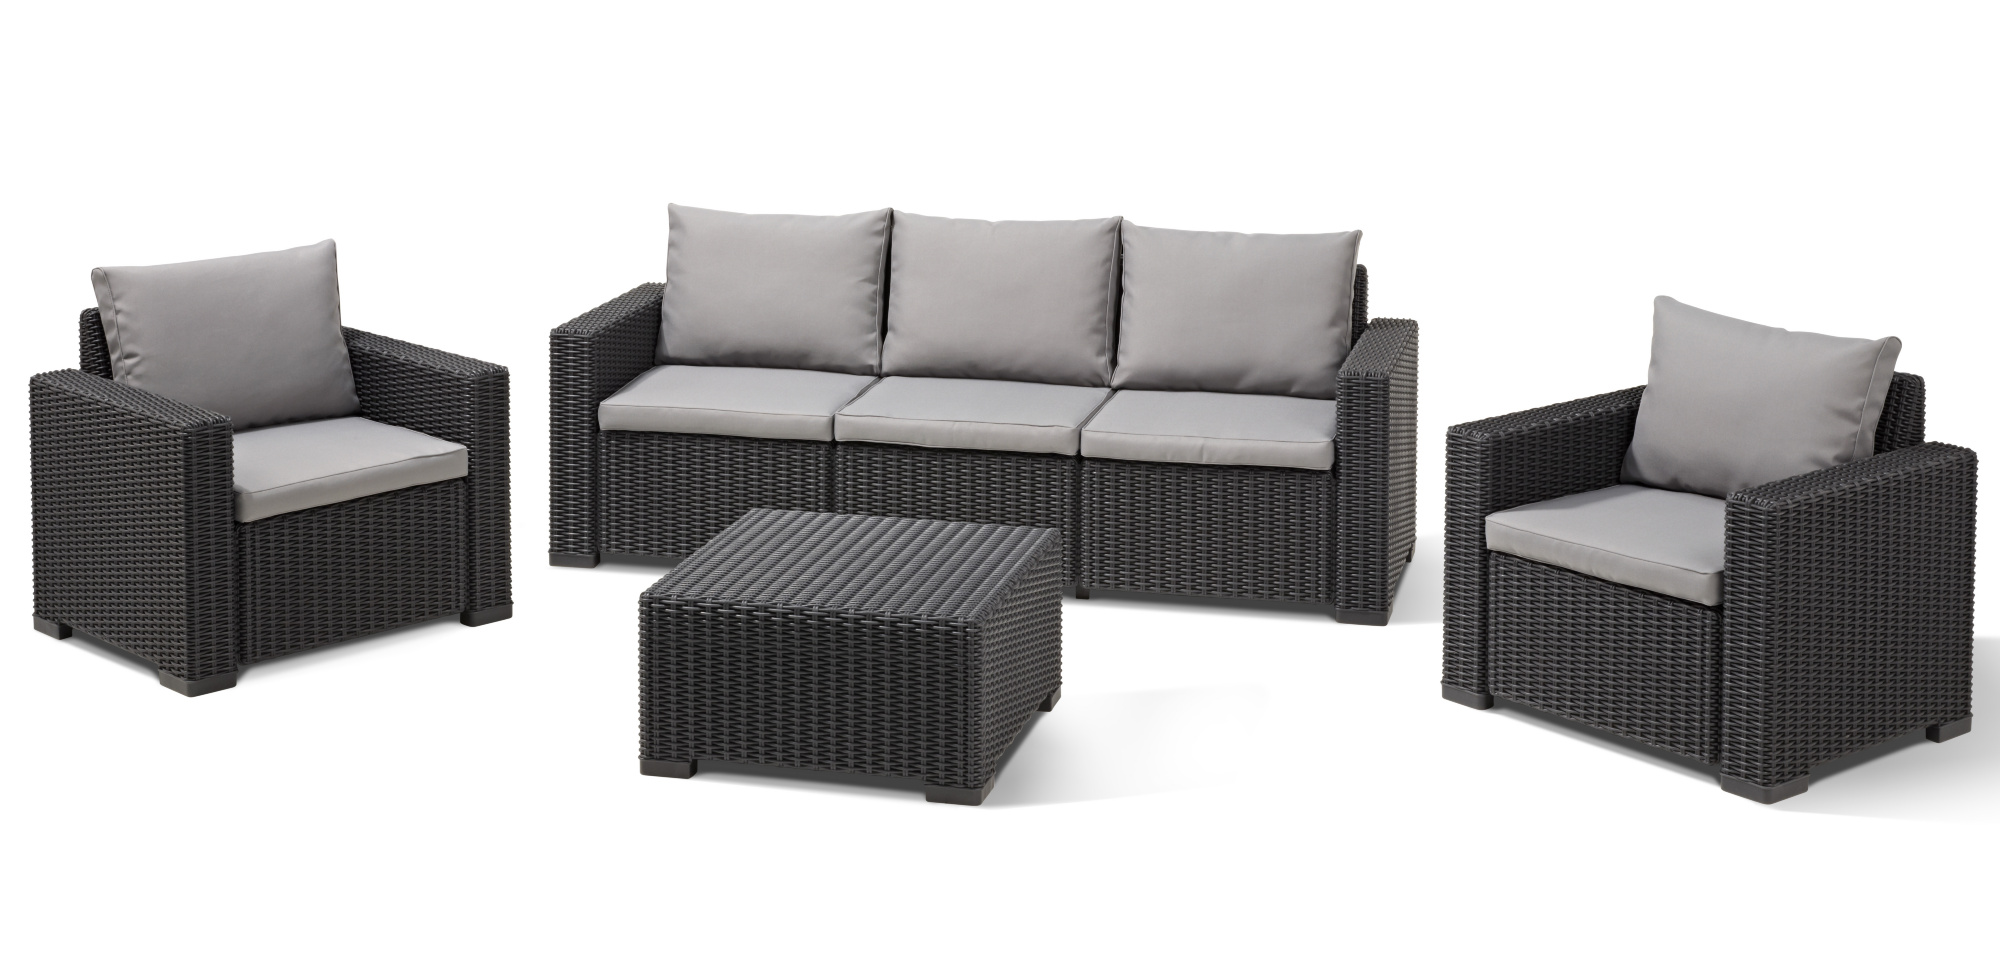 rattan lounge set grau neuesten design kollektionen f r die familien. Black Bedroom Furniture Sets. Home Design Ideas